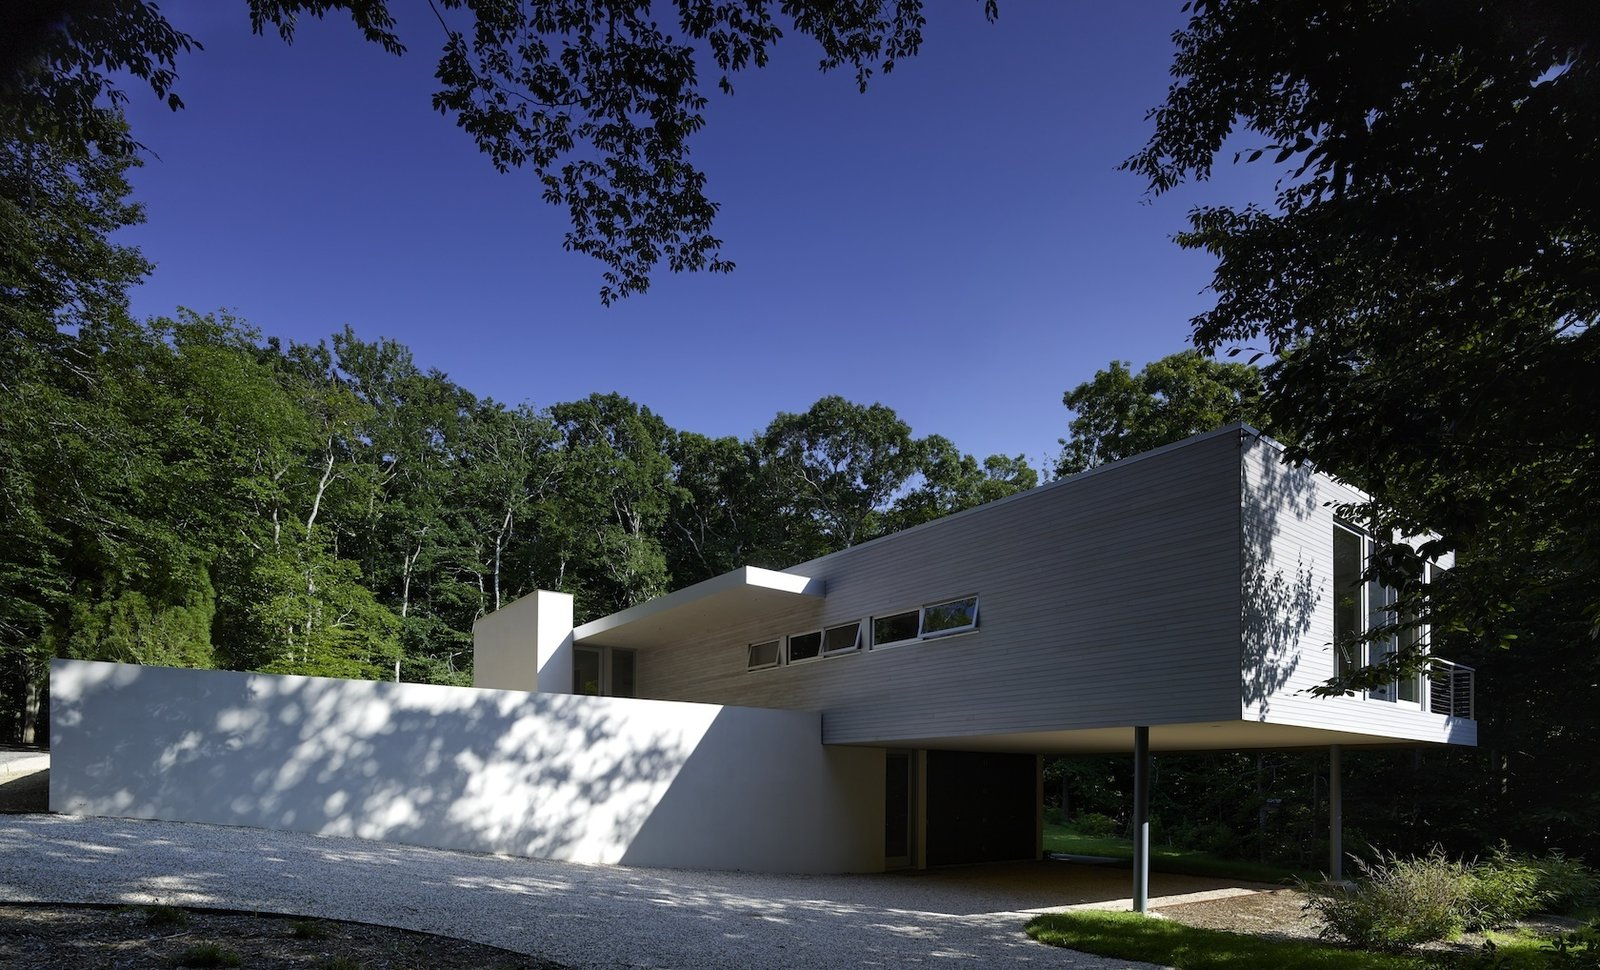 Green Woods House by Stelle Lomont Rouhani Architects